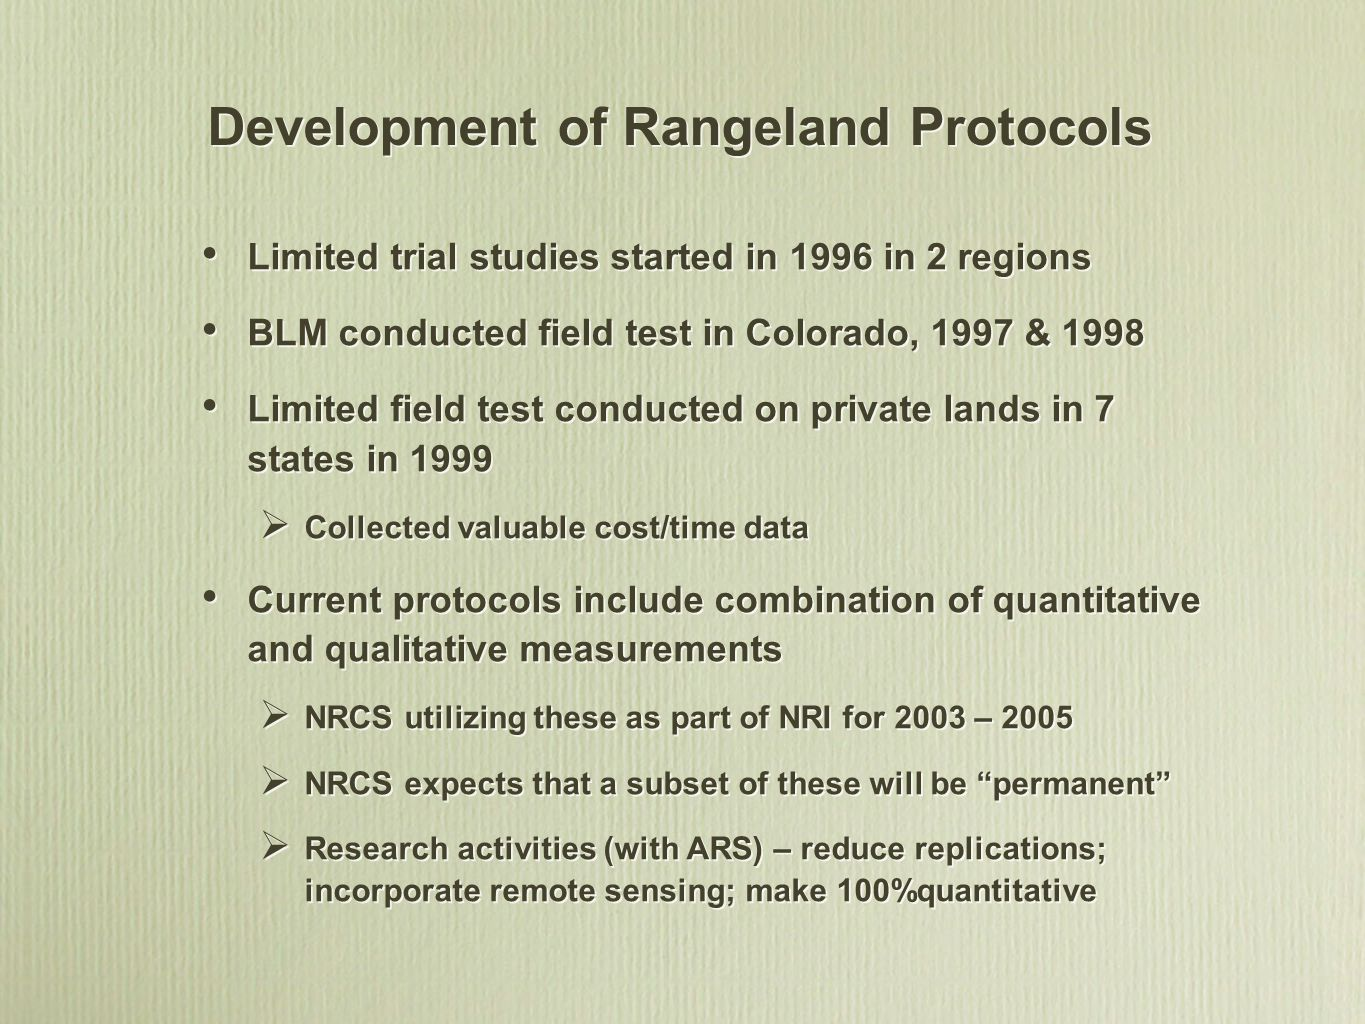 Development of Rangeland Protocols